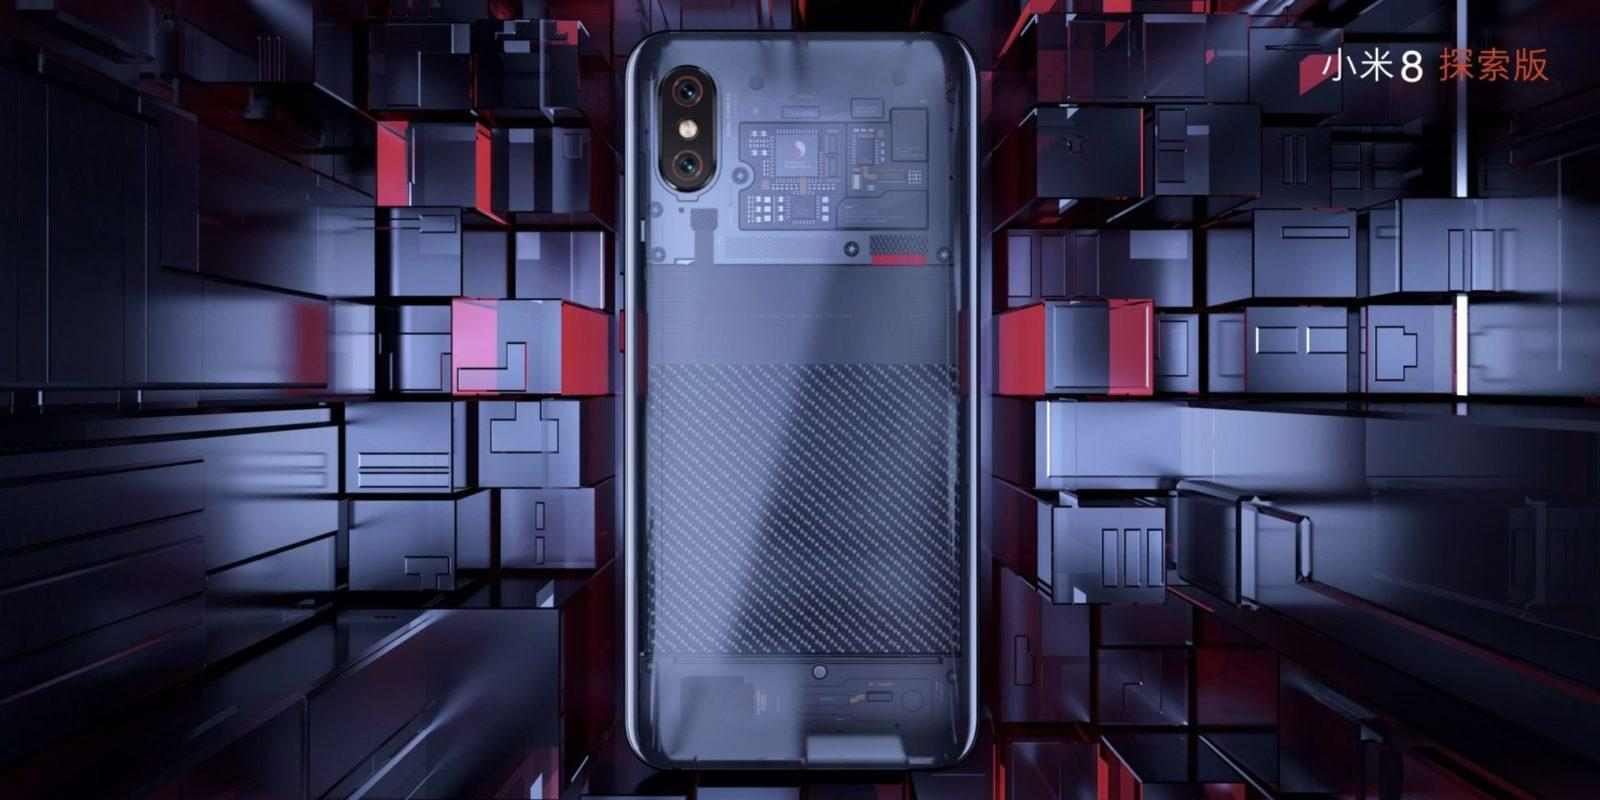 Mi 8 Explorer Edition | Evosmart.it